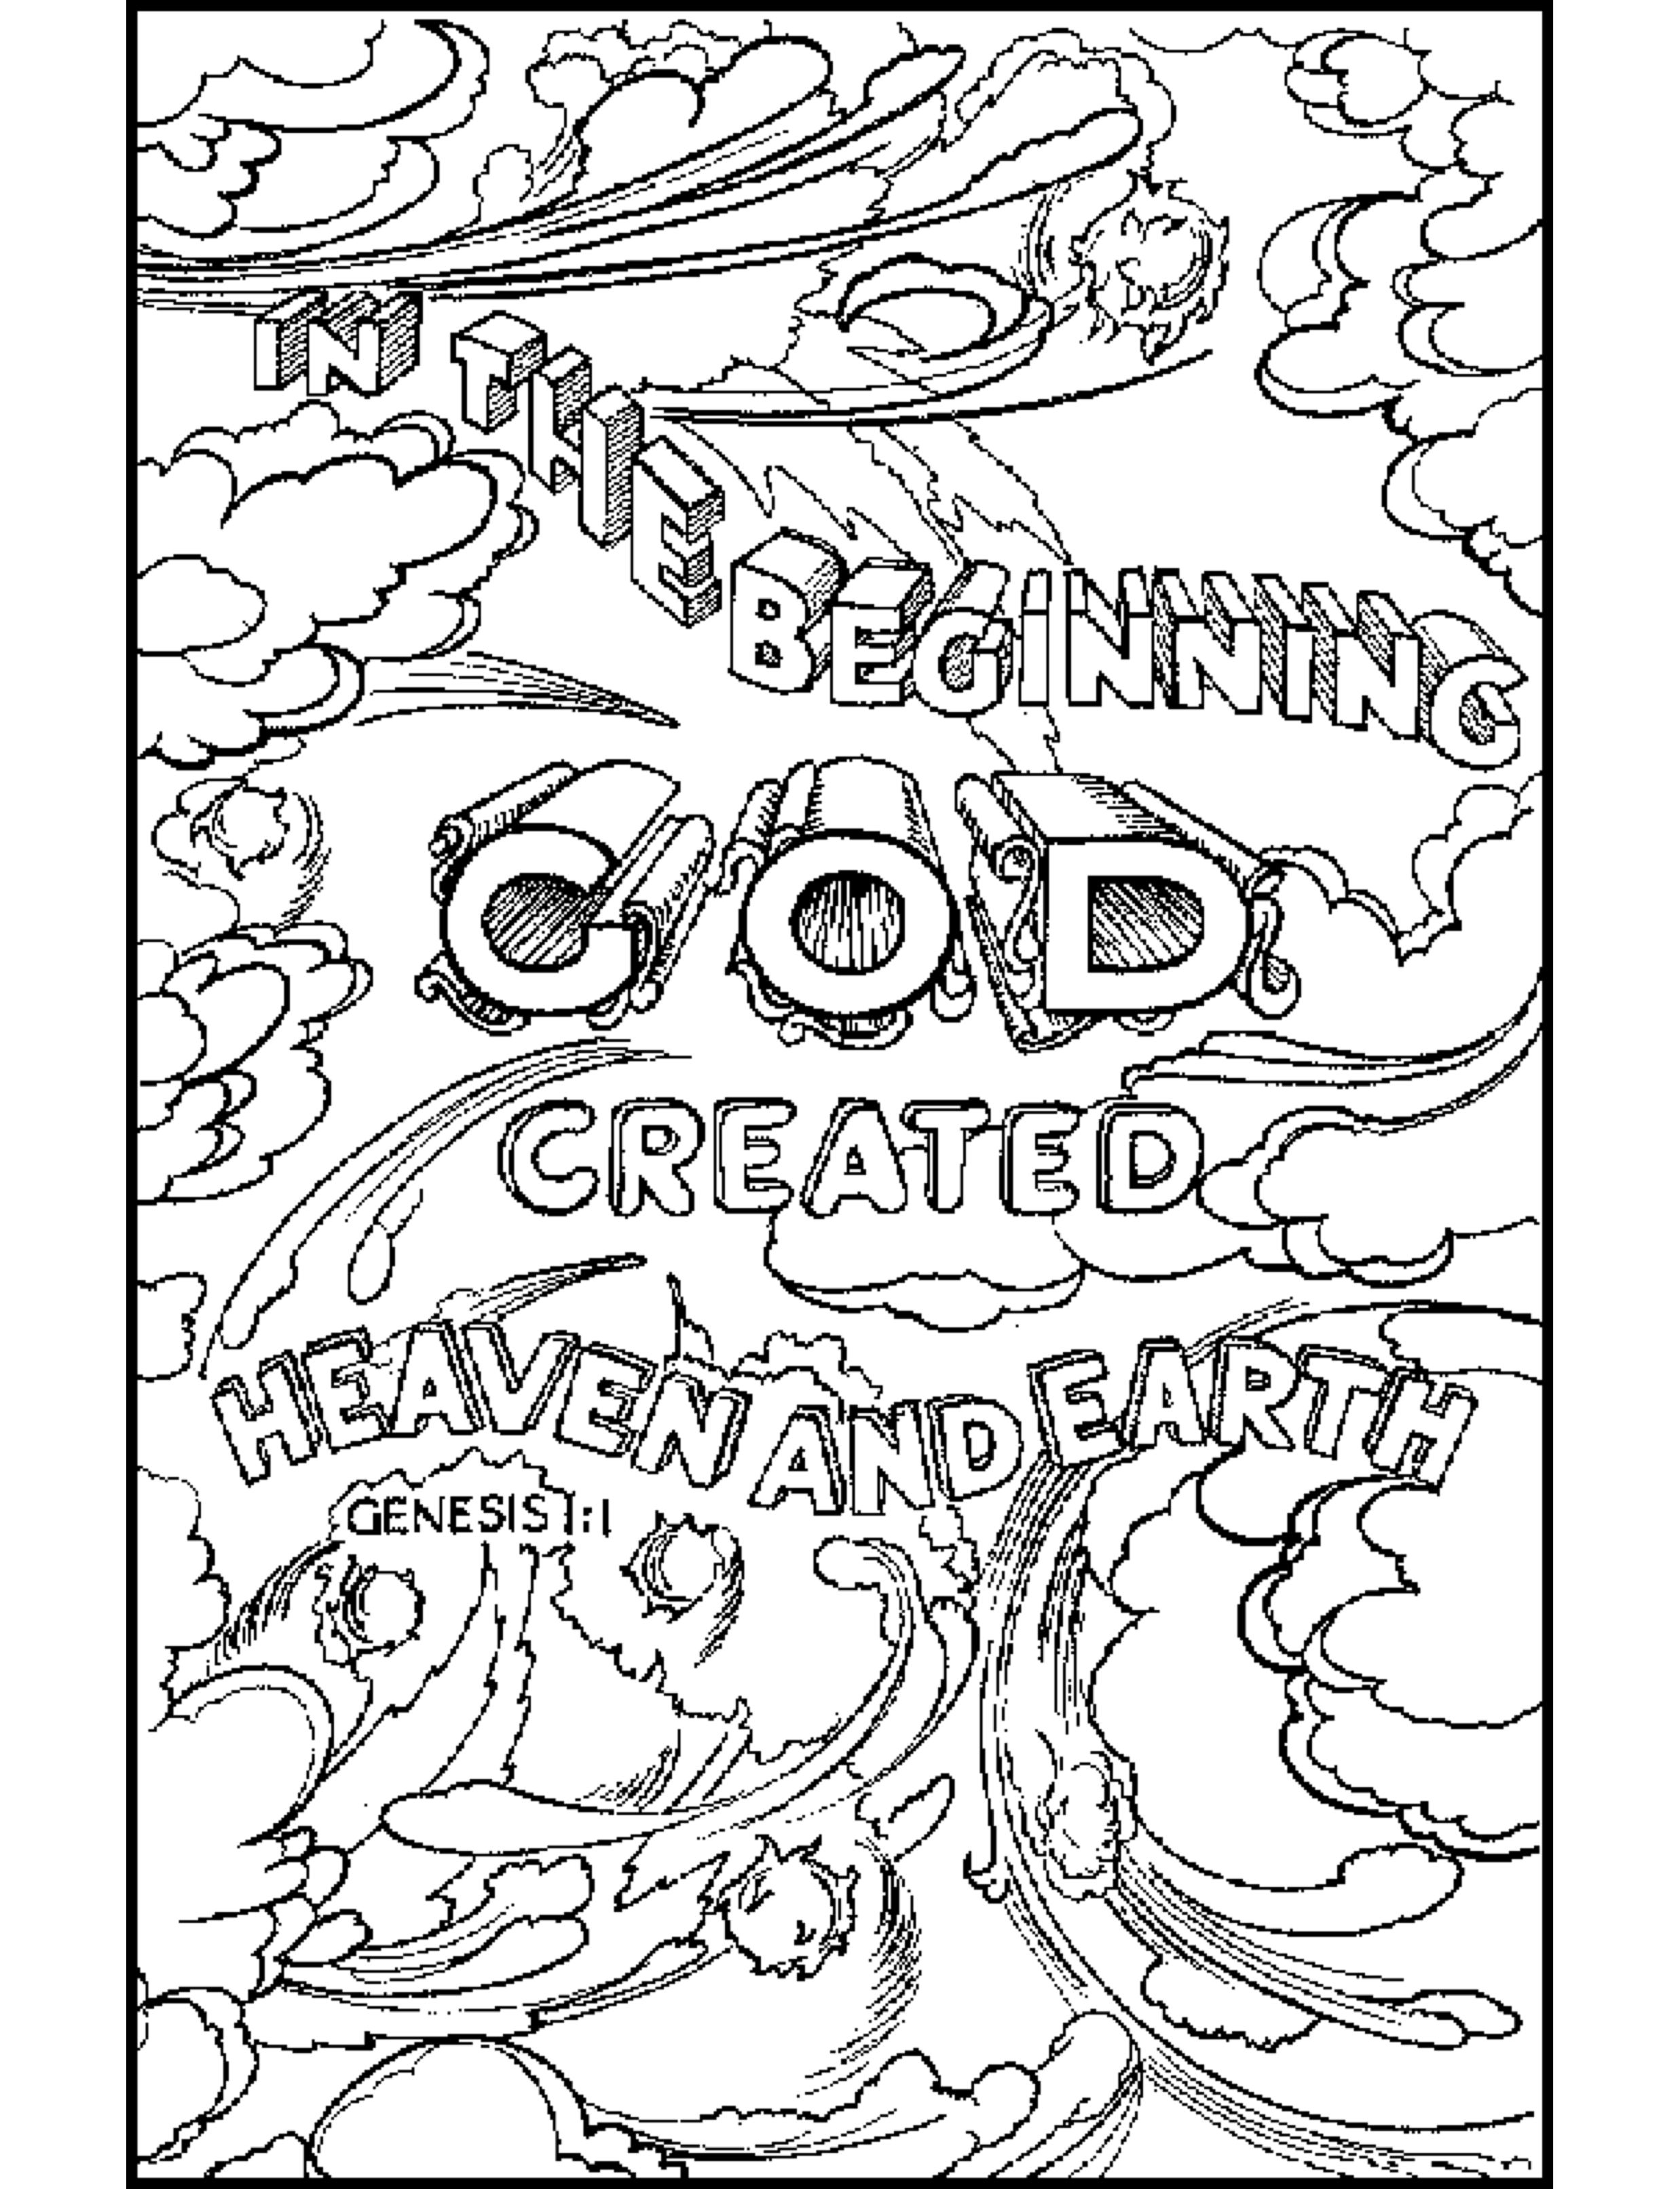 b is for bible coloring page bible verse coloring pages for kids at getcoloringscom page for is coloring bible b